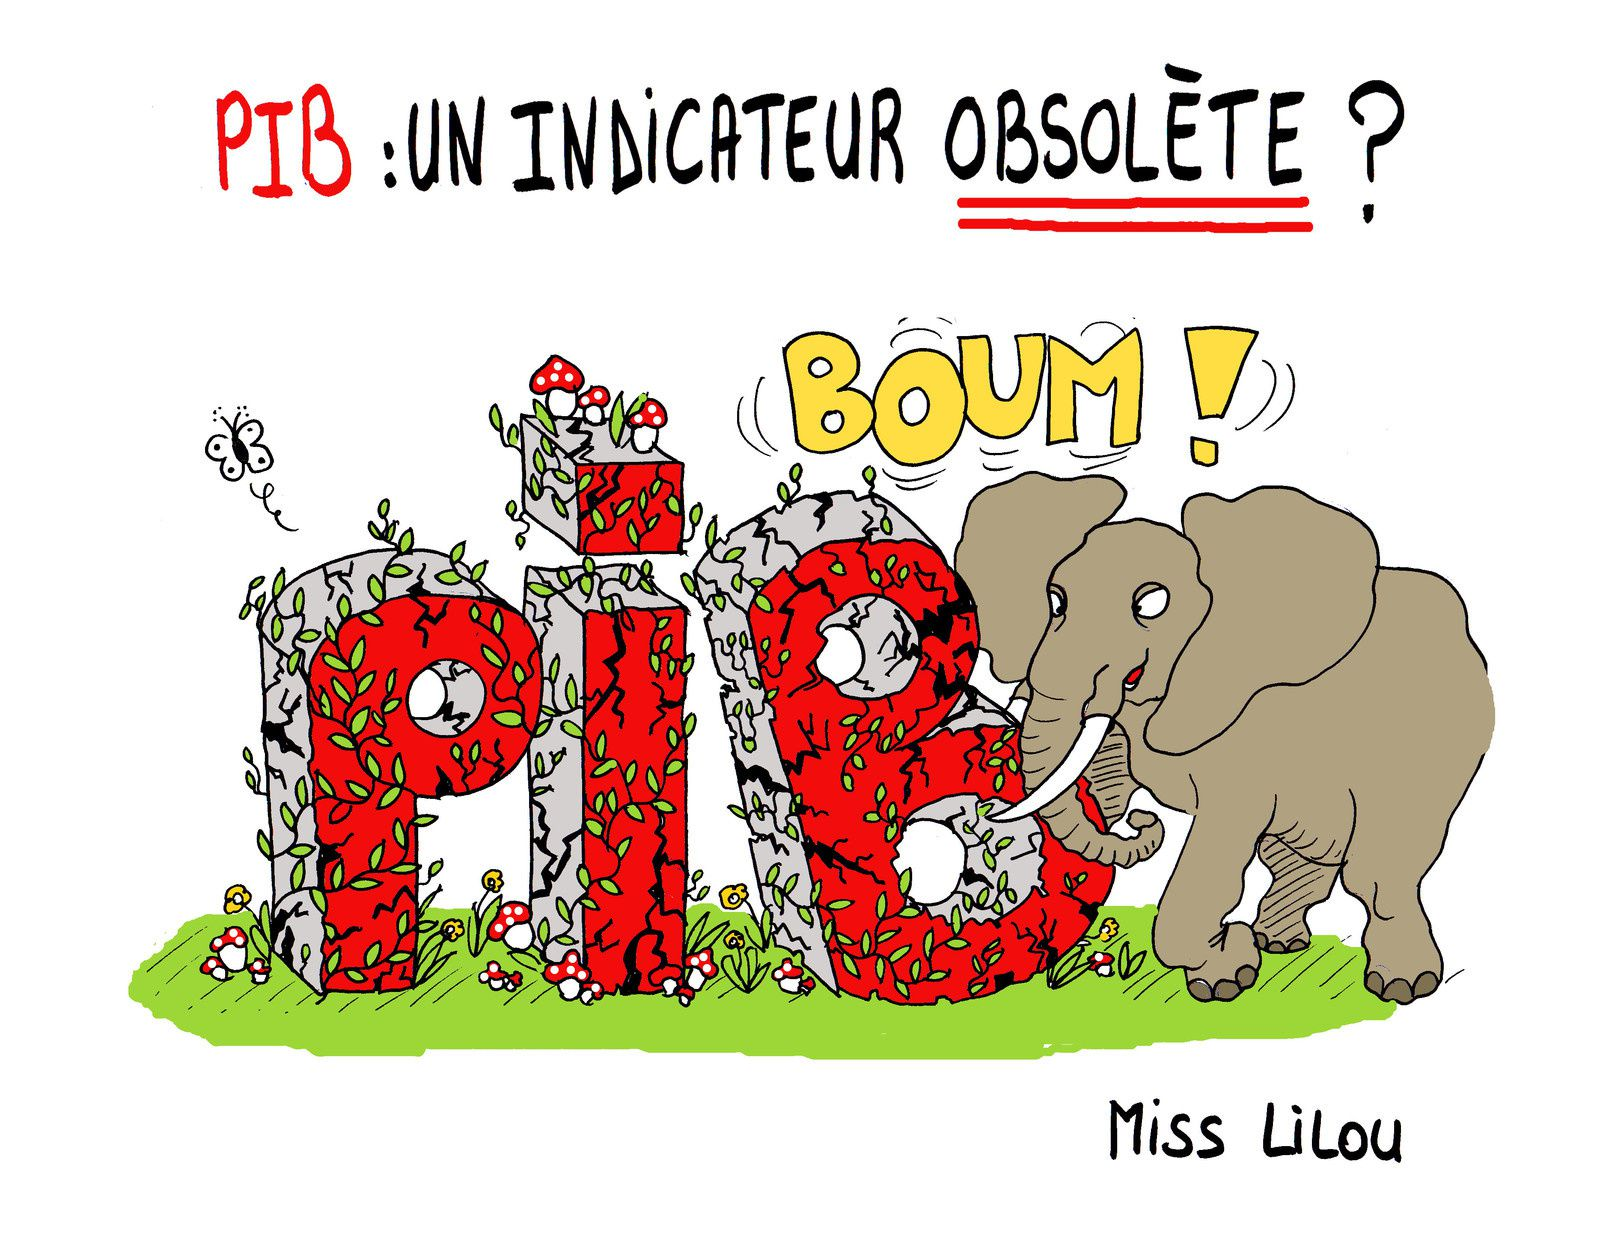 pib un indicateur conomique obsol te dessins miss lilou